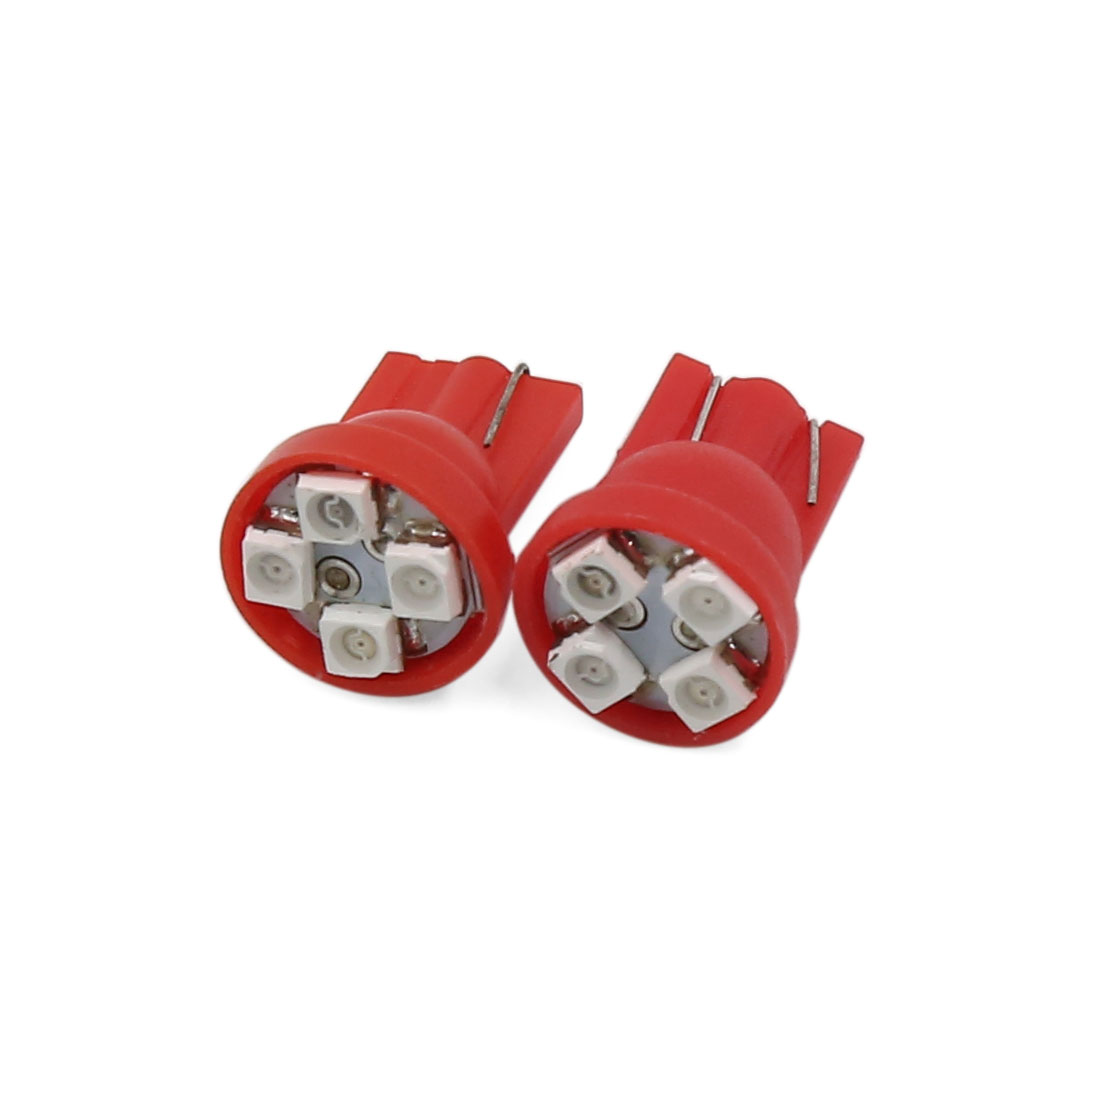 Red T10 4 LED 1210 SMD Side Tail Parking Indicator Light Bulbs 2 Pcs Interior